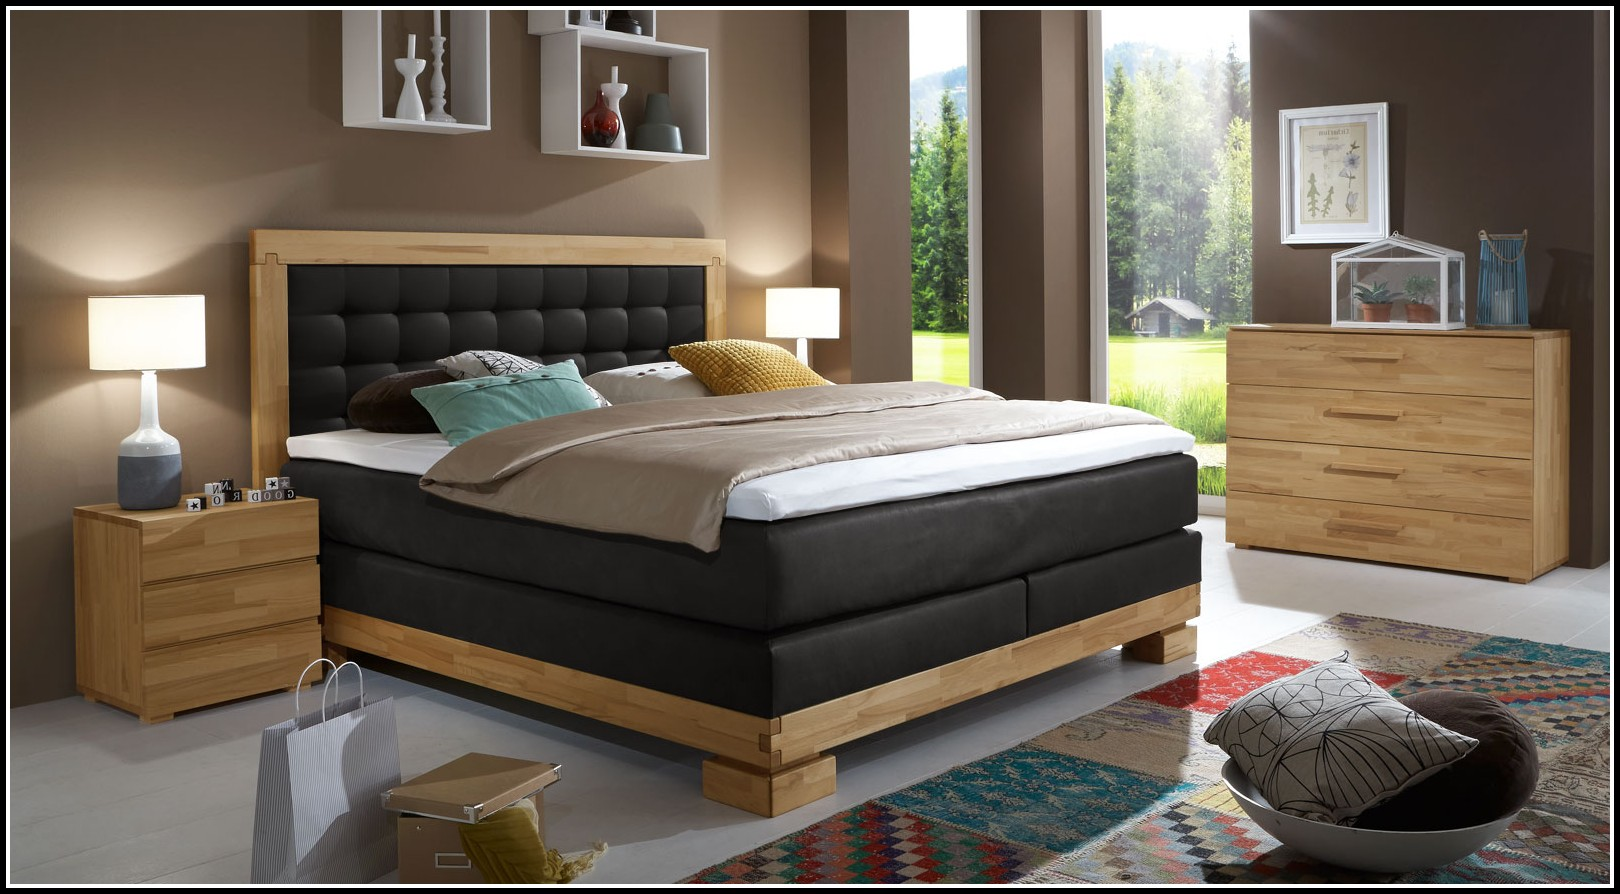 boxspring bett komplett 140x200 betten house und dekor galerie jlw8xpxweq. Black Bedroom Furniture Sets. Home Design Ideas